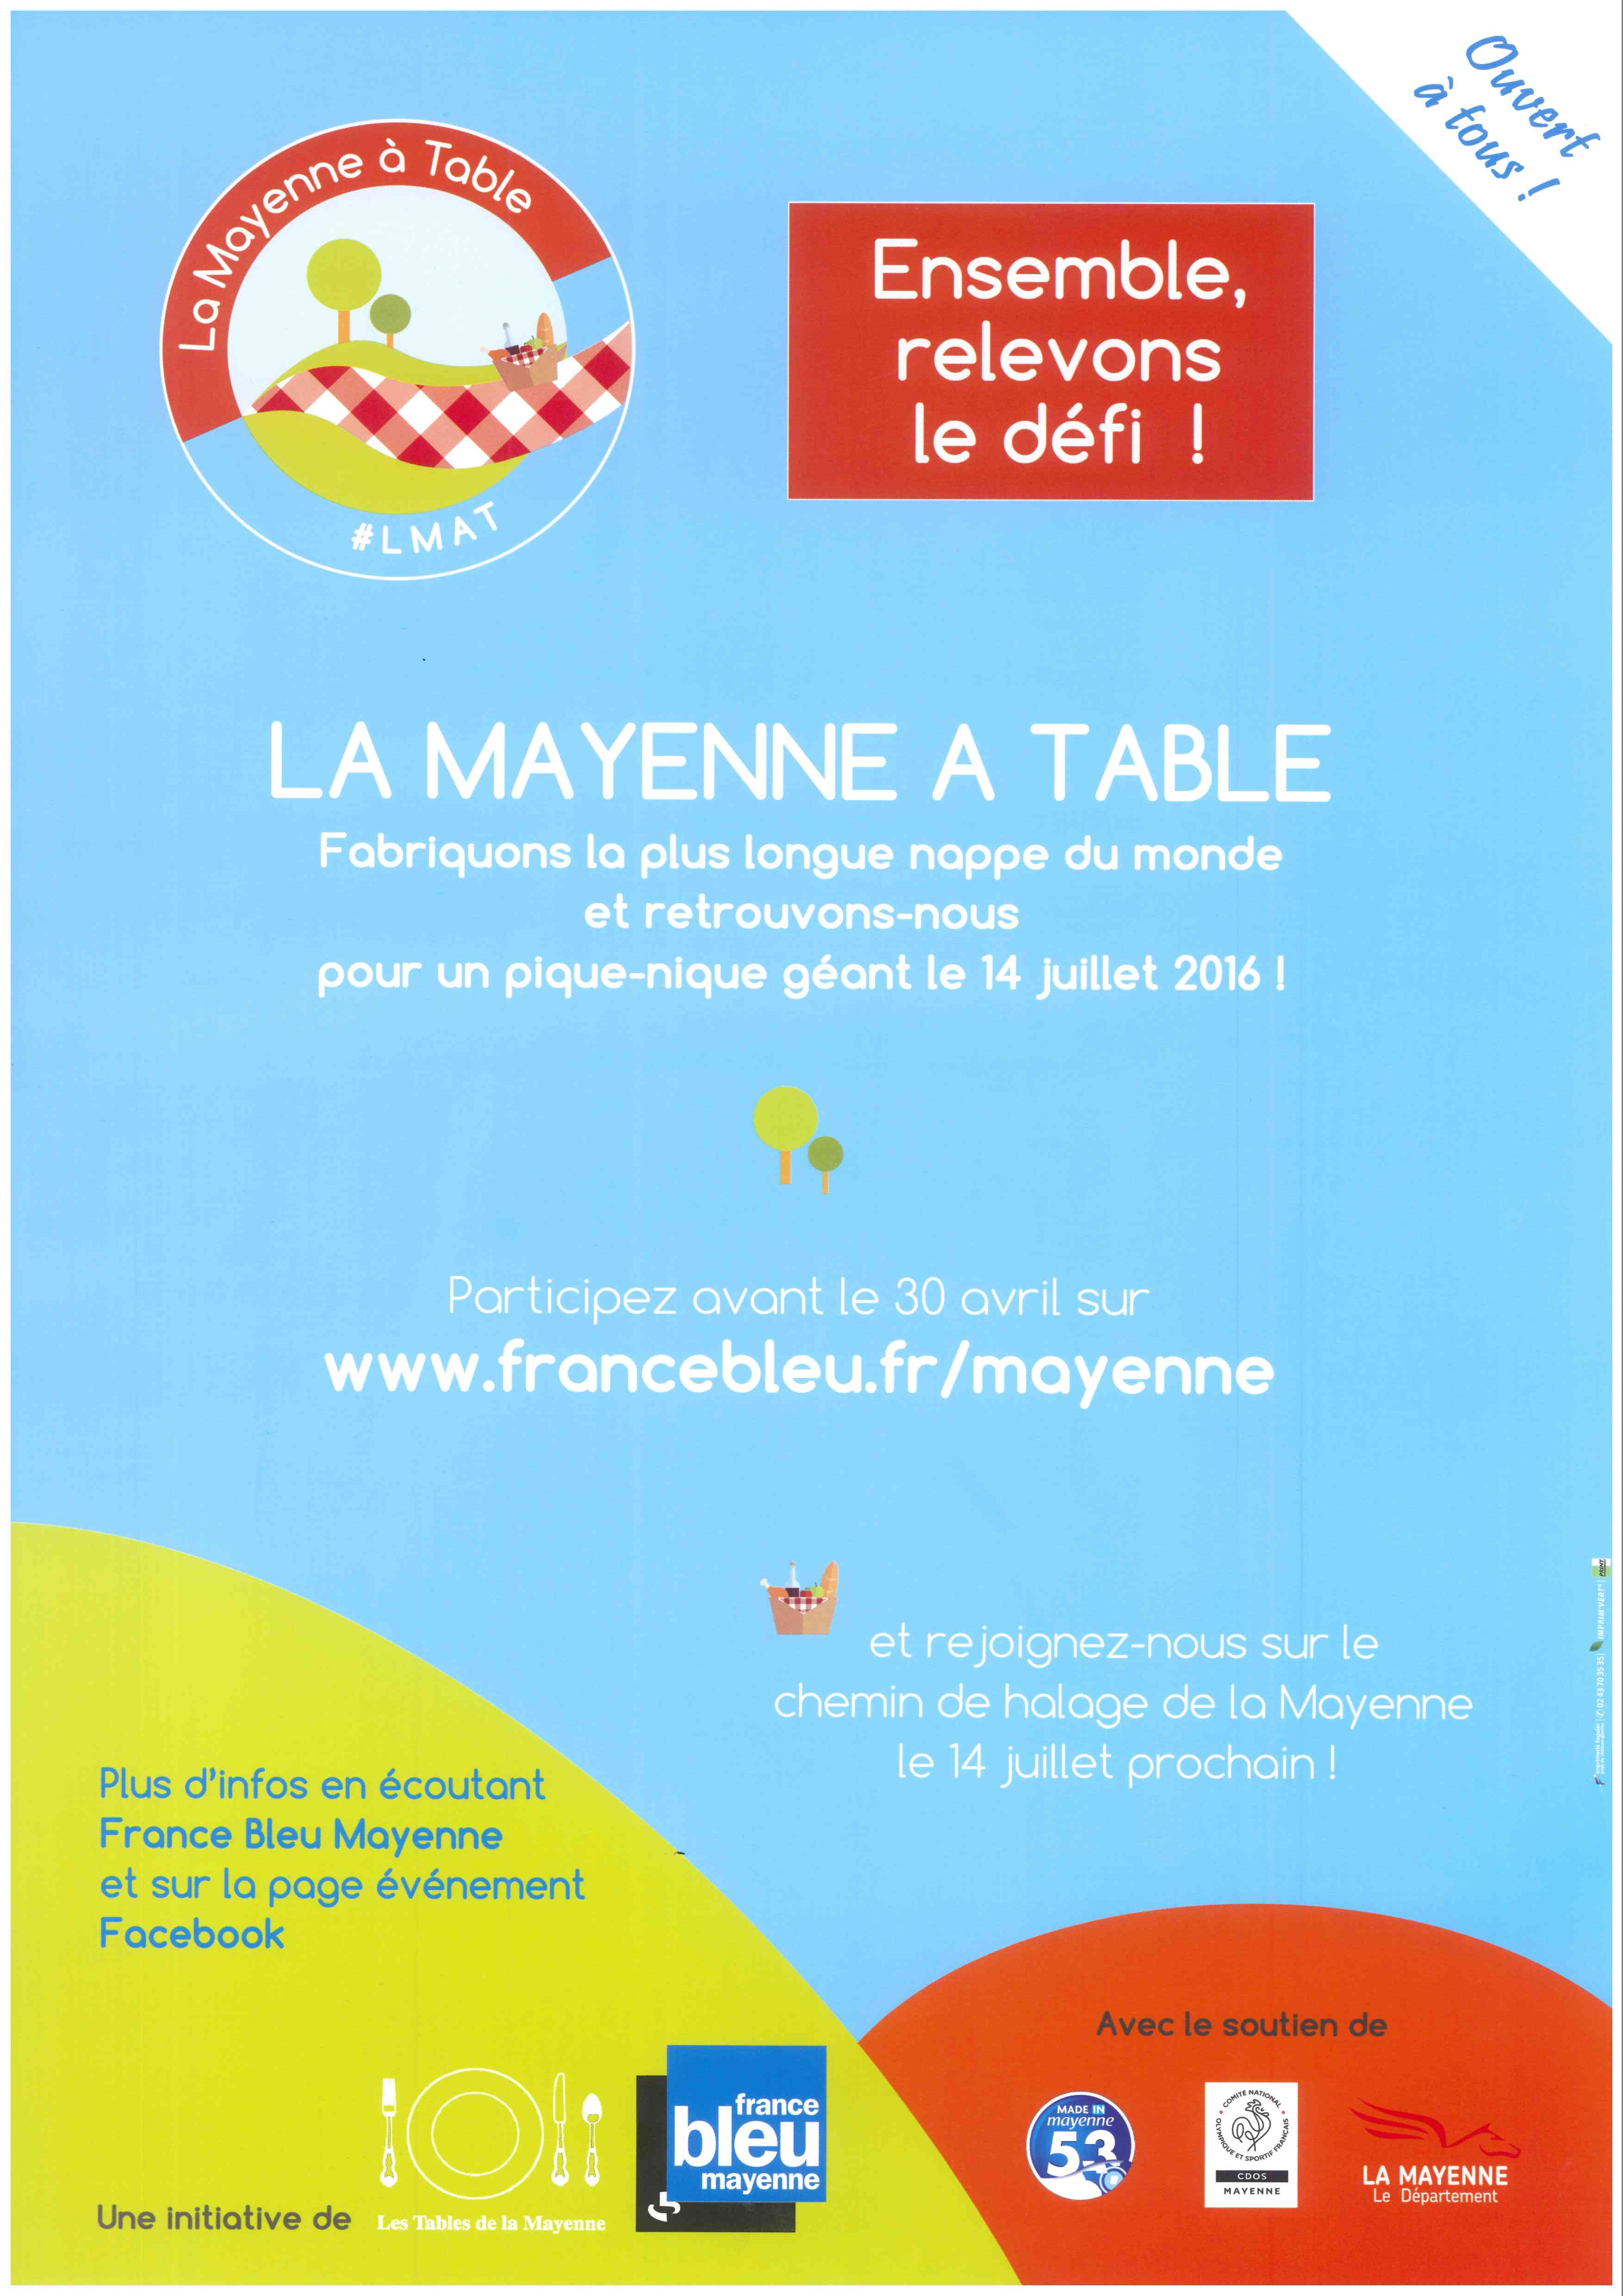 LA MAYENNE A TABLE